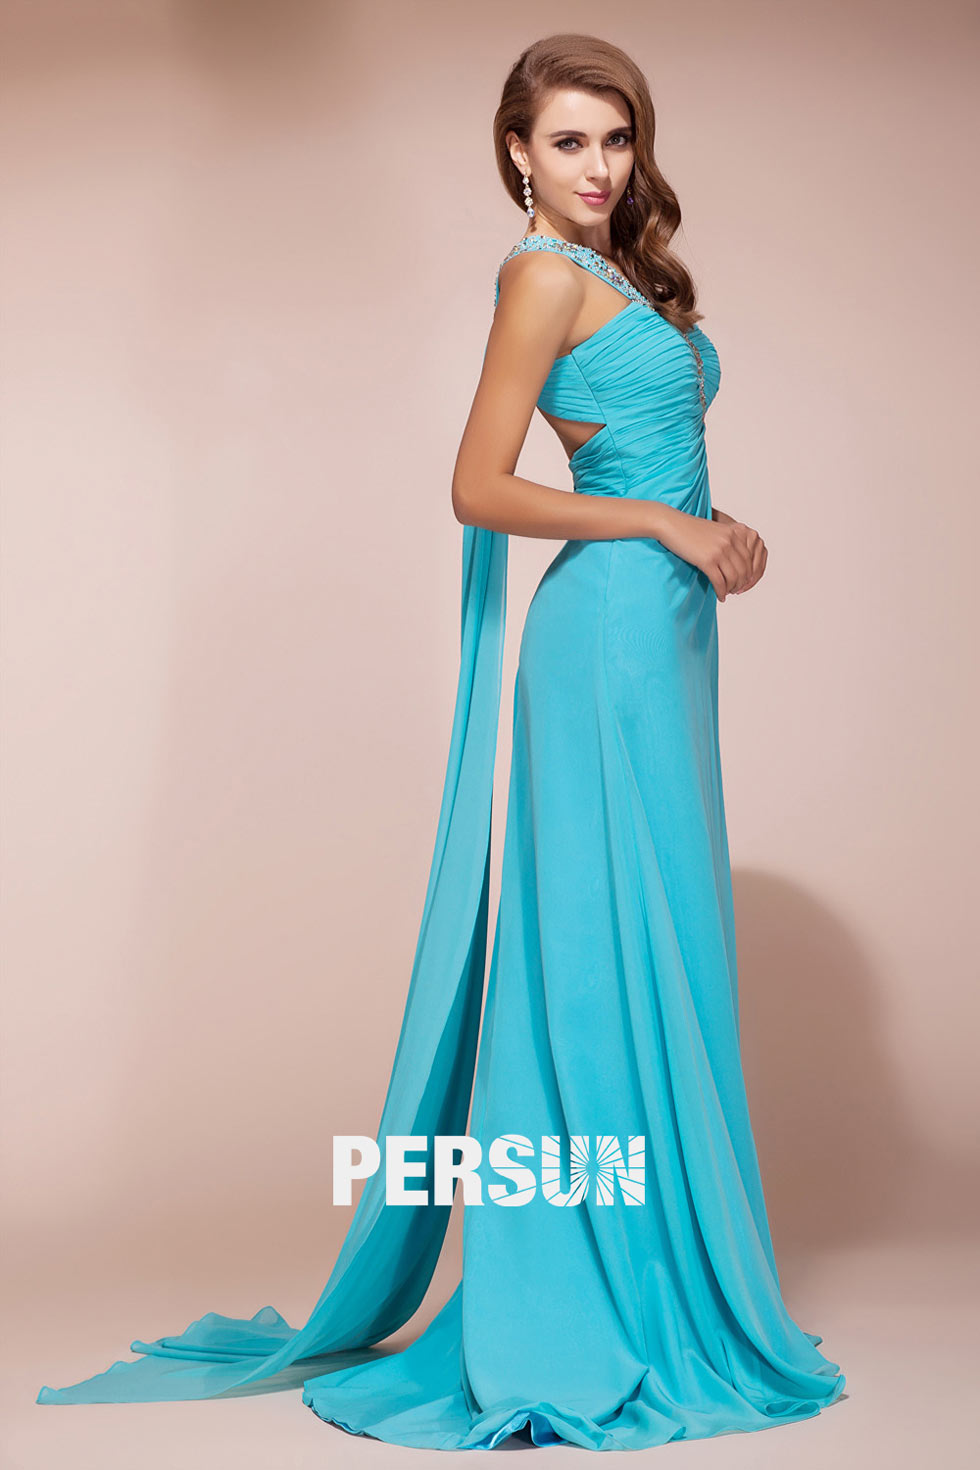 Robes de soiree turquoise